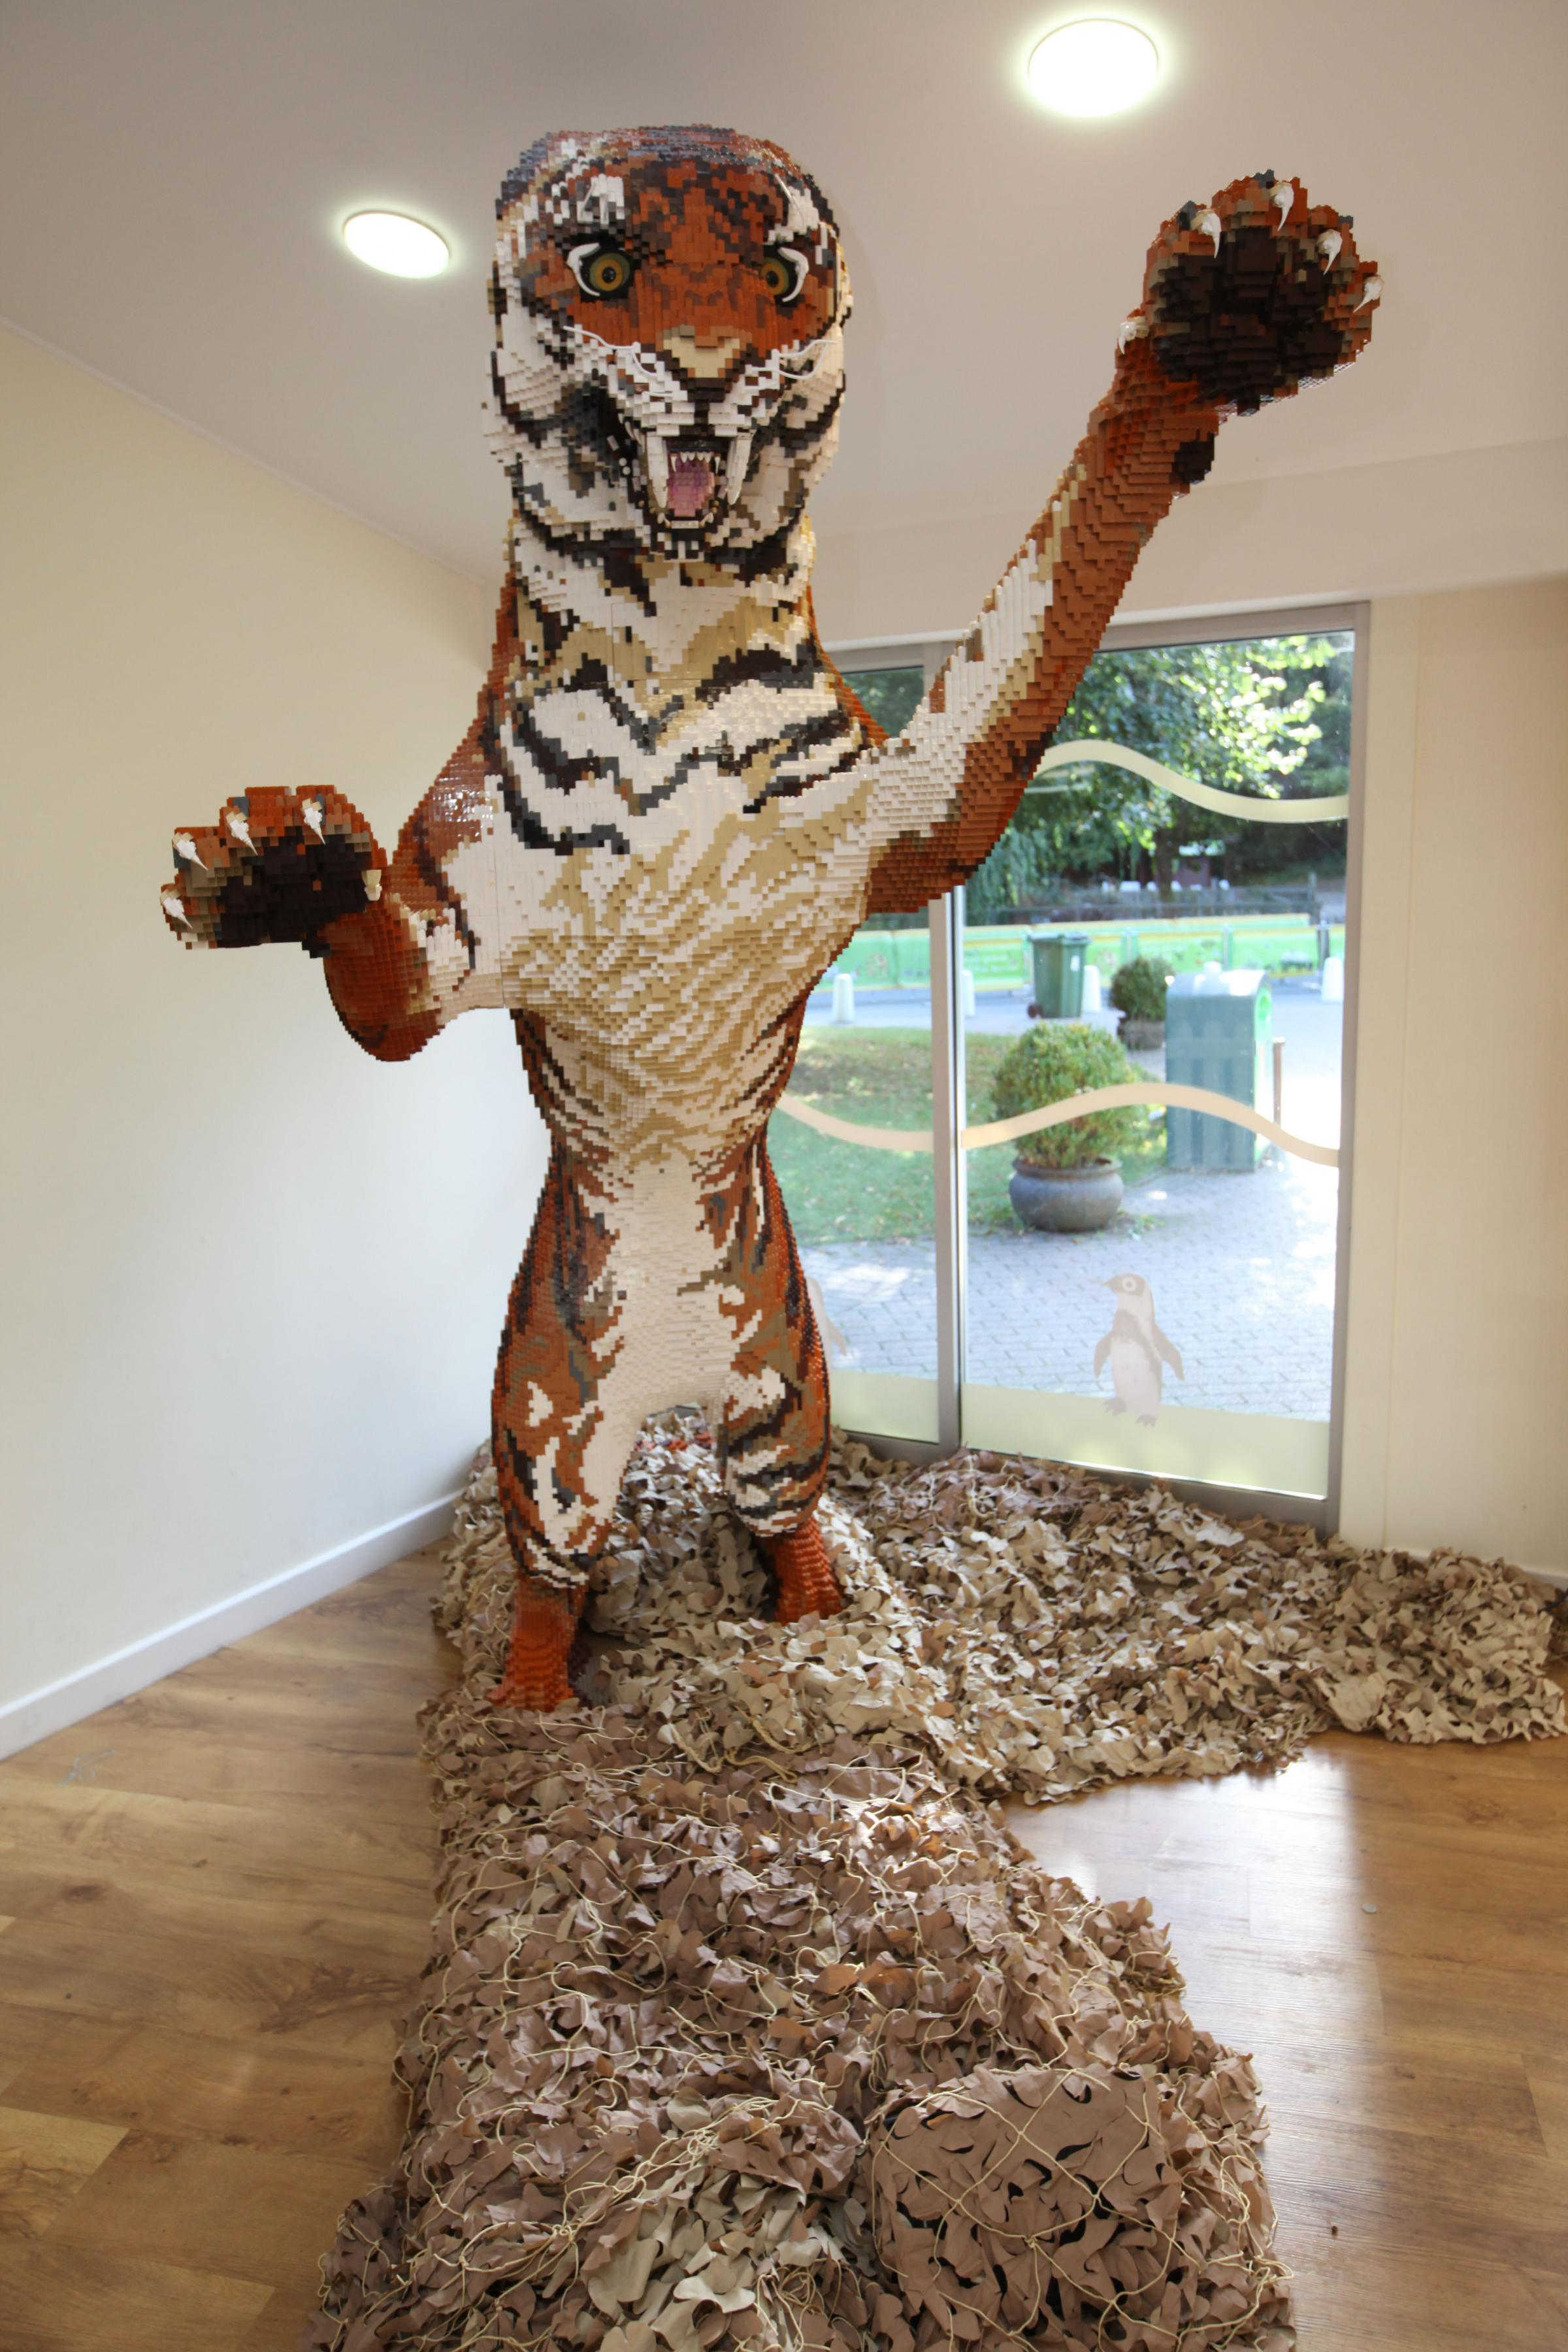 How are Lego sculptures in full size 46